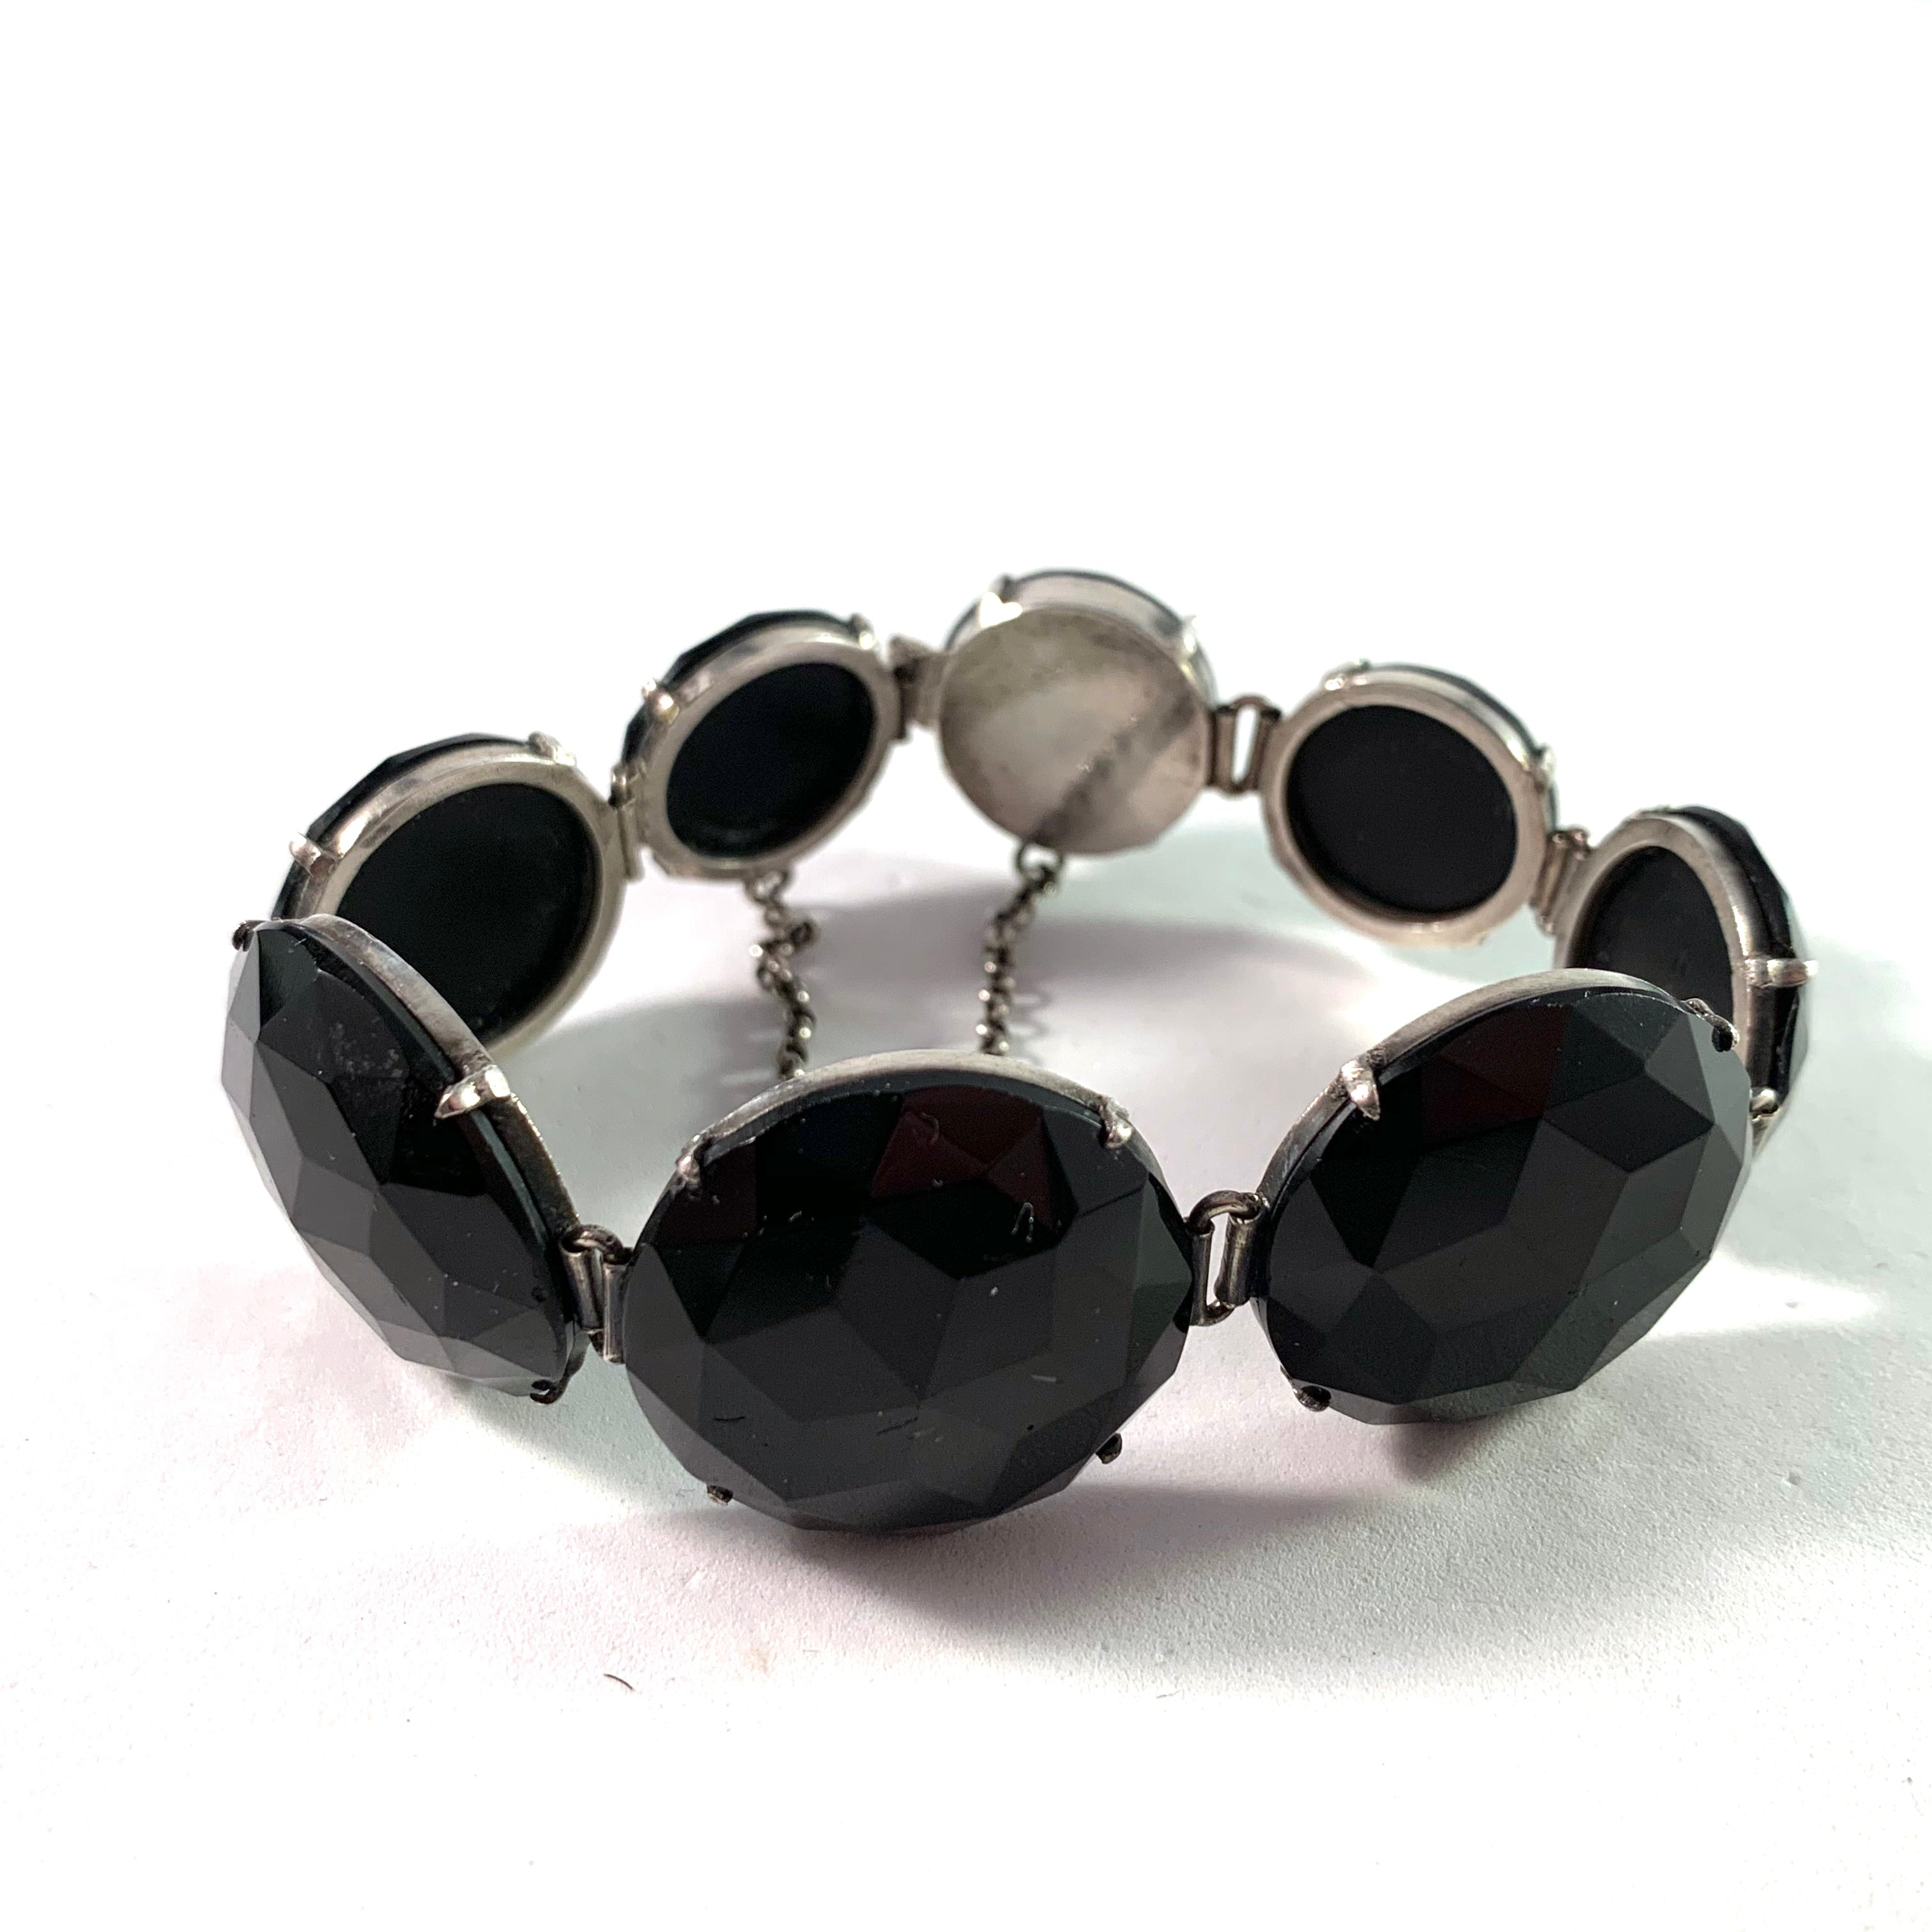 Sweden late 1800s Victorian Solid Silver Glass Jet Mourning Bracelet.